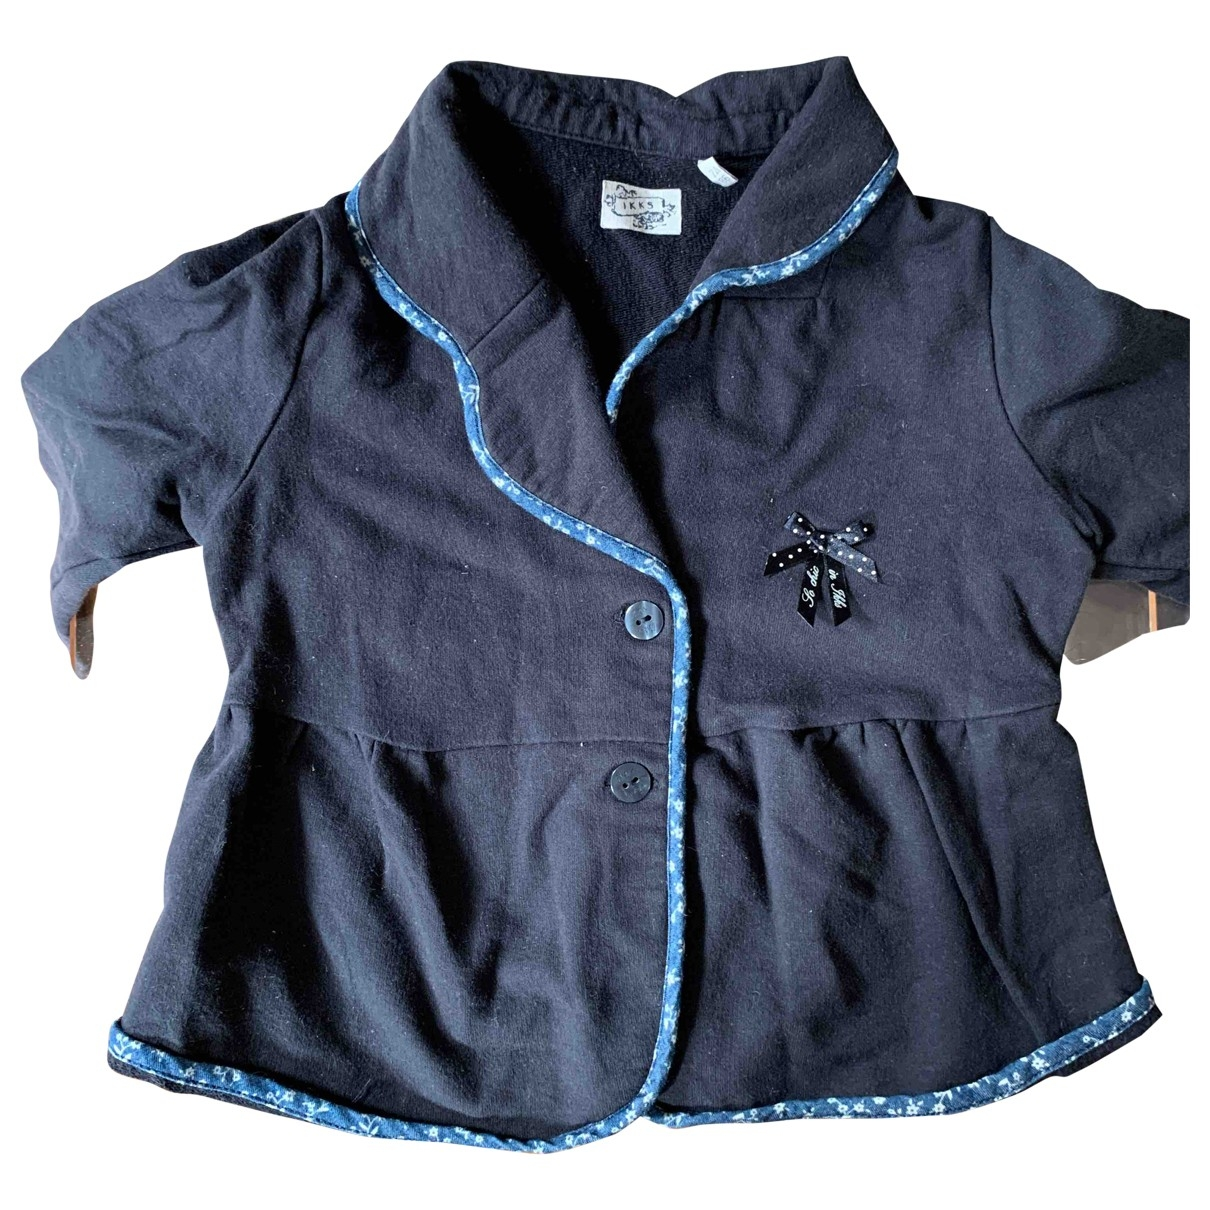 Ikks \N Blue Cotton jacket & coat for Kids 2 years - up to 86cm FR